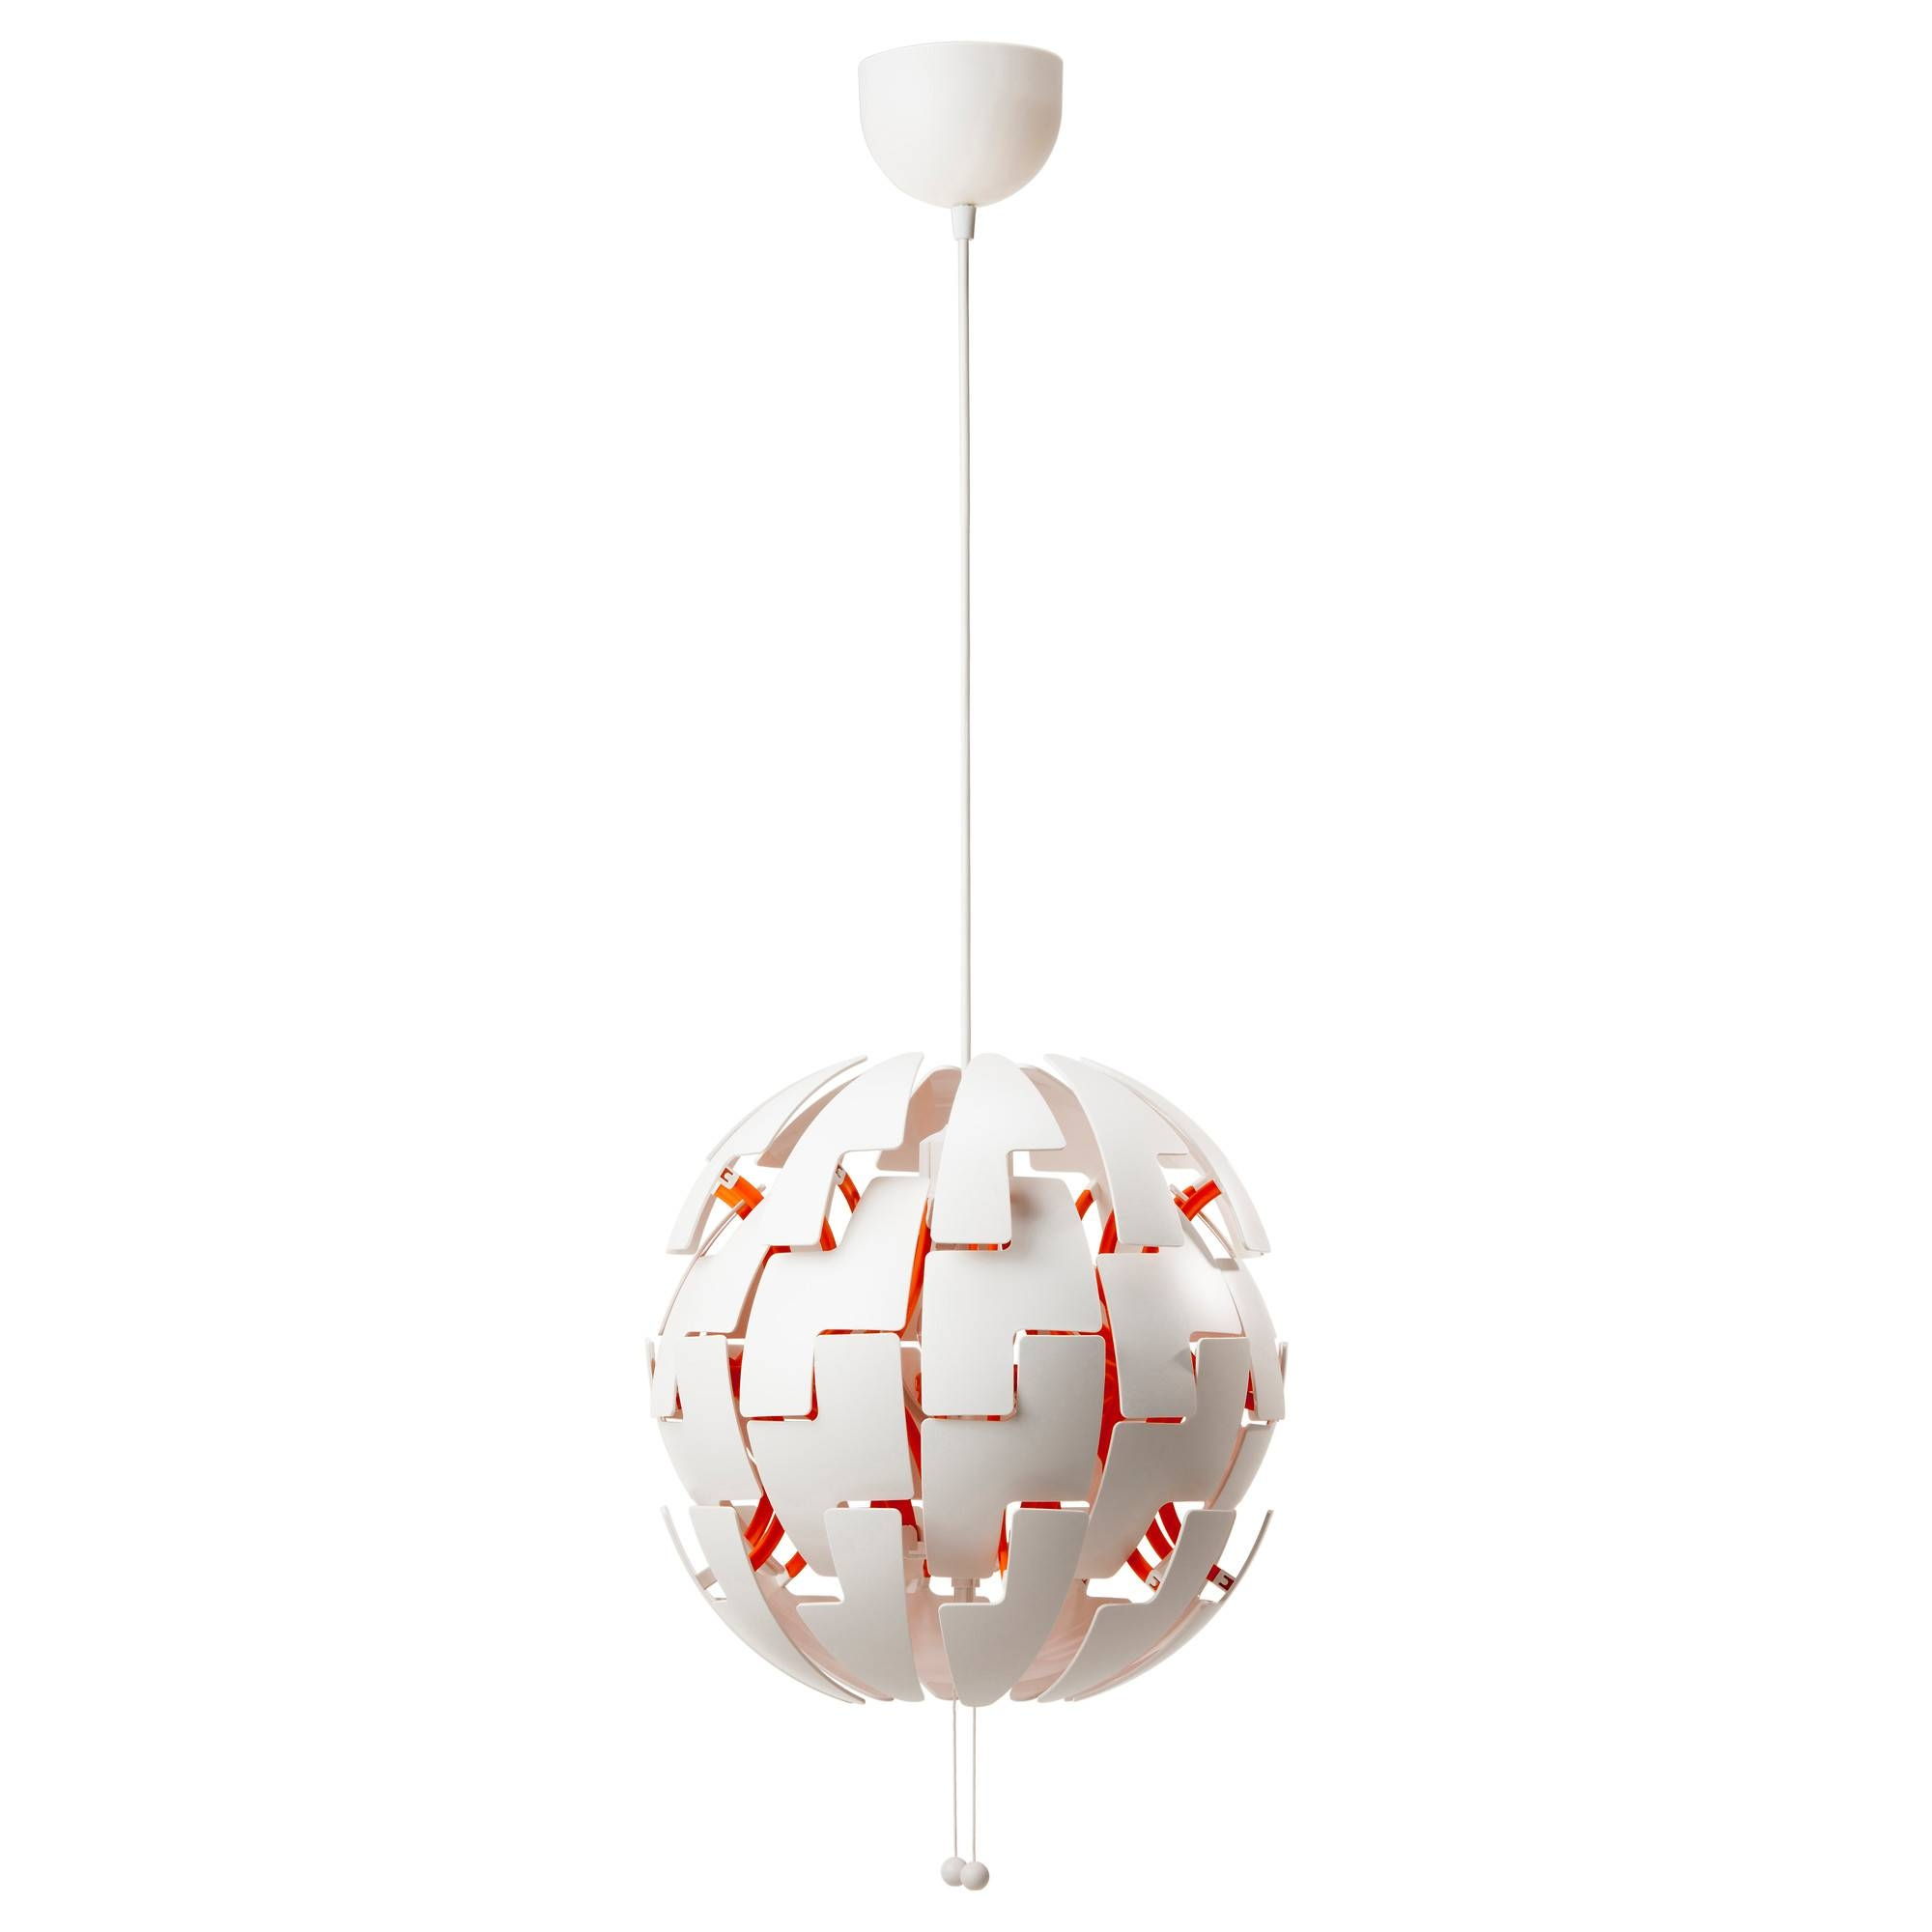 Ikea Ps 2014 Pendant Lamp White/orange - Ikea with Ikea Pendant Lights Fixtures (Image 11 of 15)